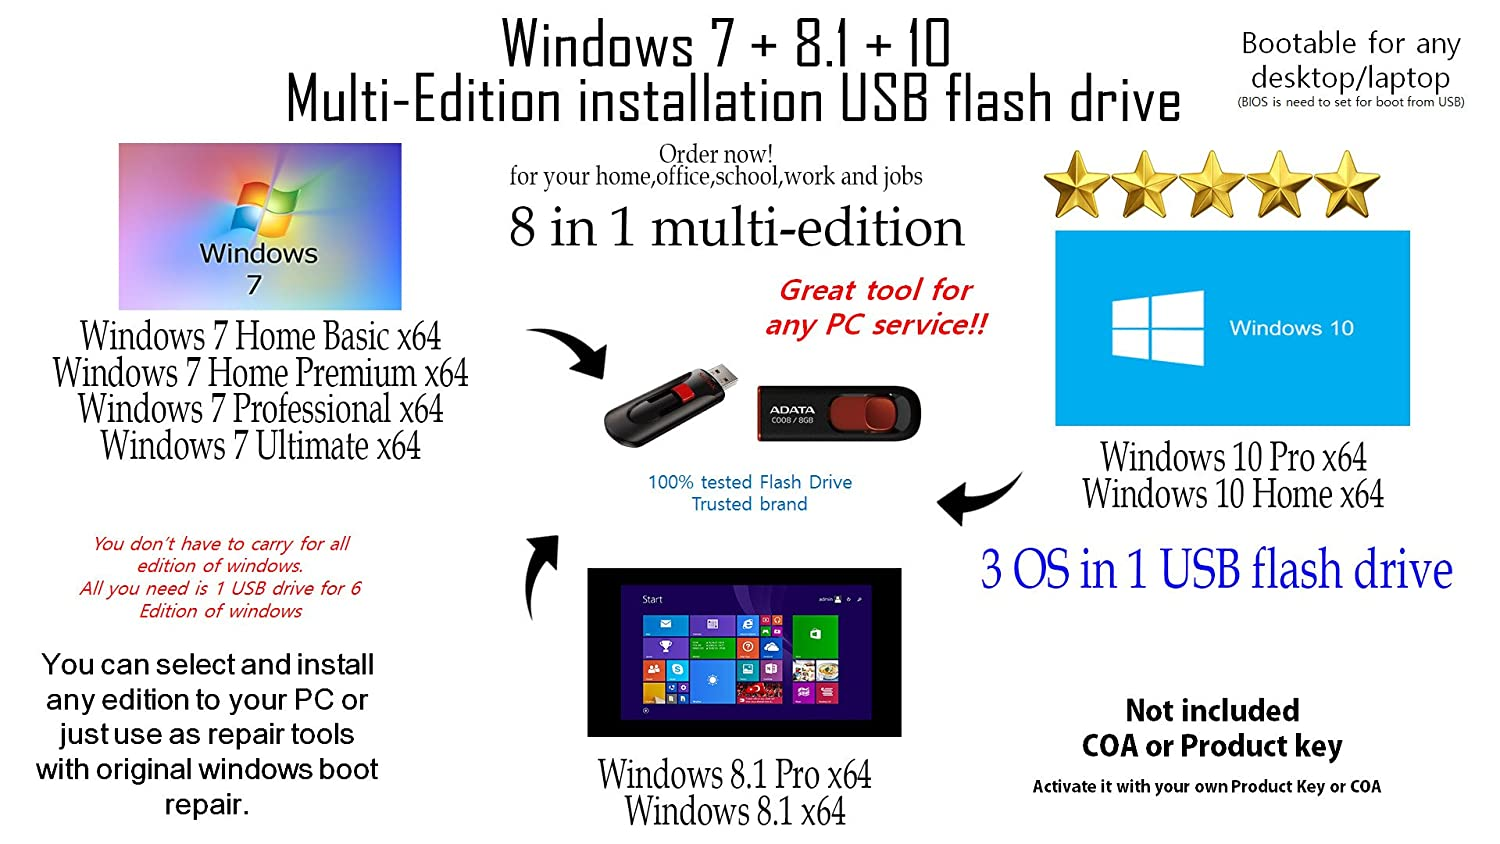 Amazon.com: Multi-Edition USB 16GB Flash Drive Windows 7 + 8.1 + 10 ...